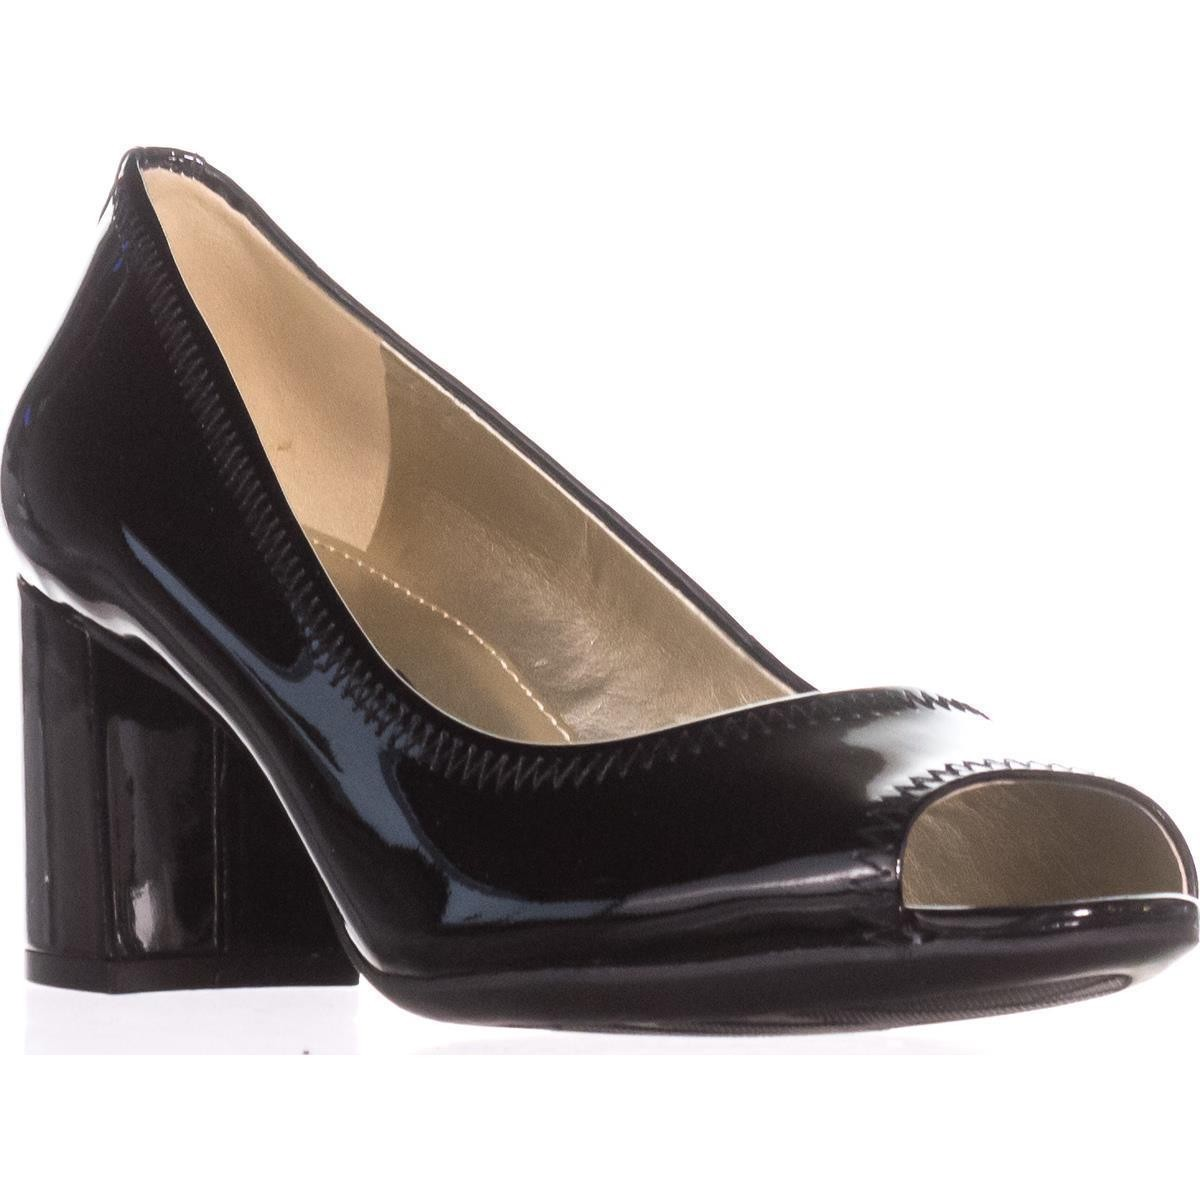 Black Peep Toe Pumps anne klein meredith peep-toe pumps, black patent EWGBPLB